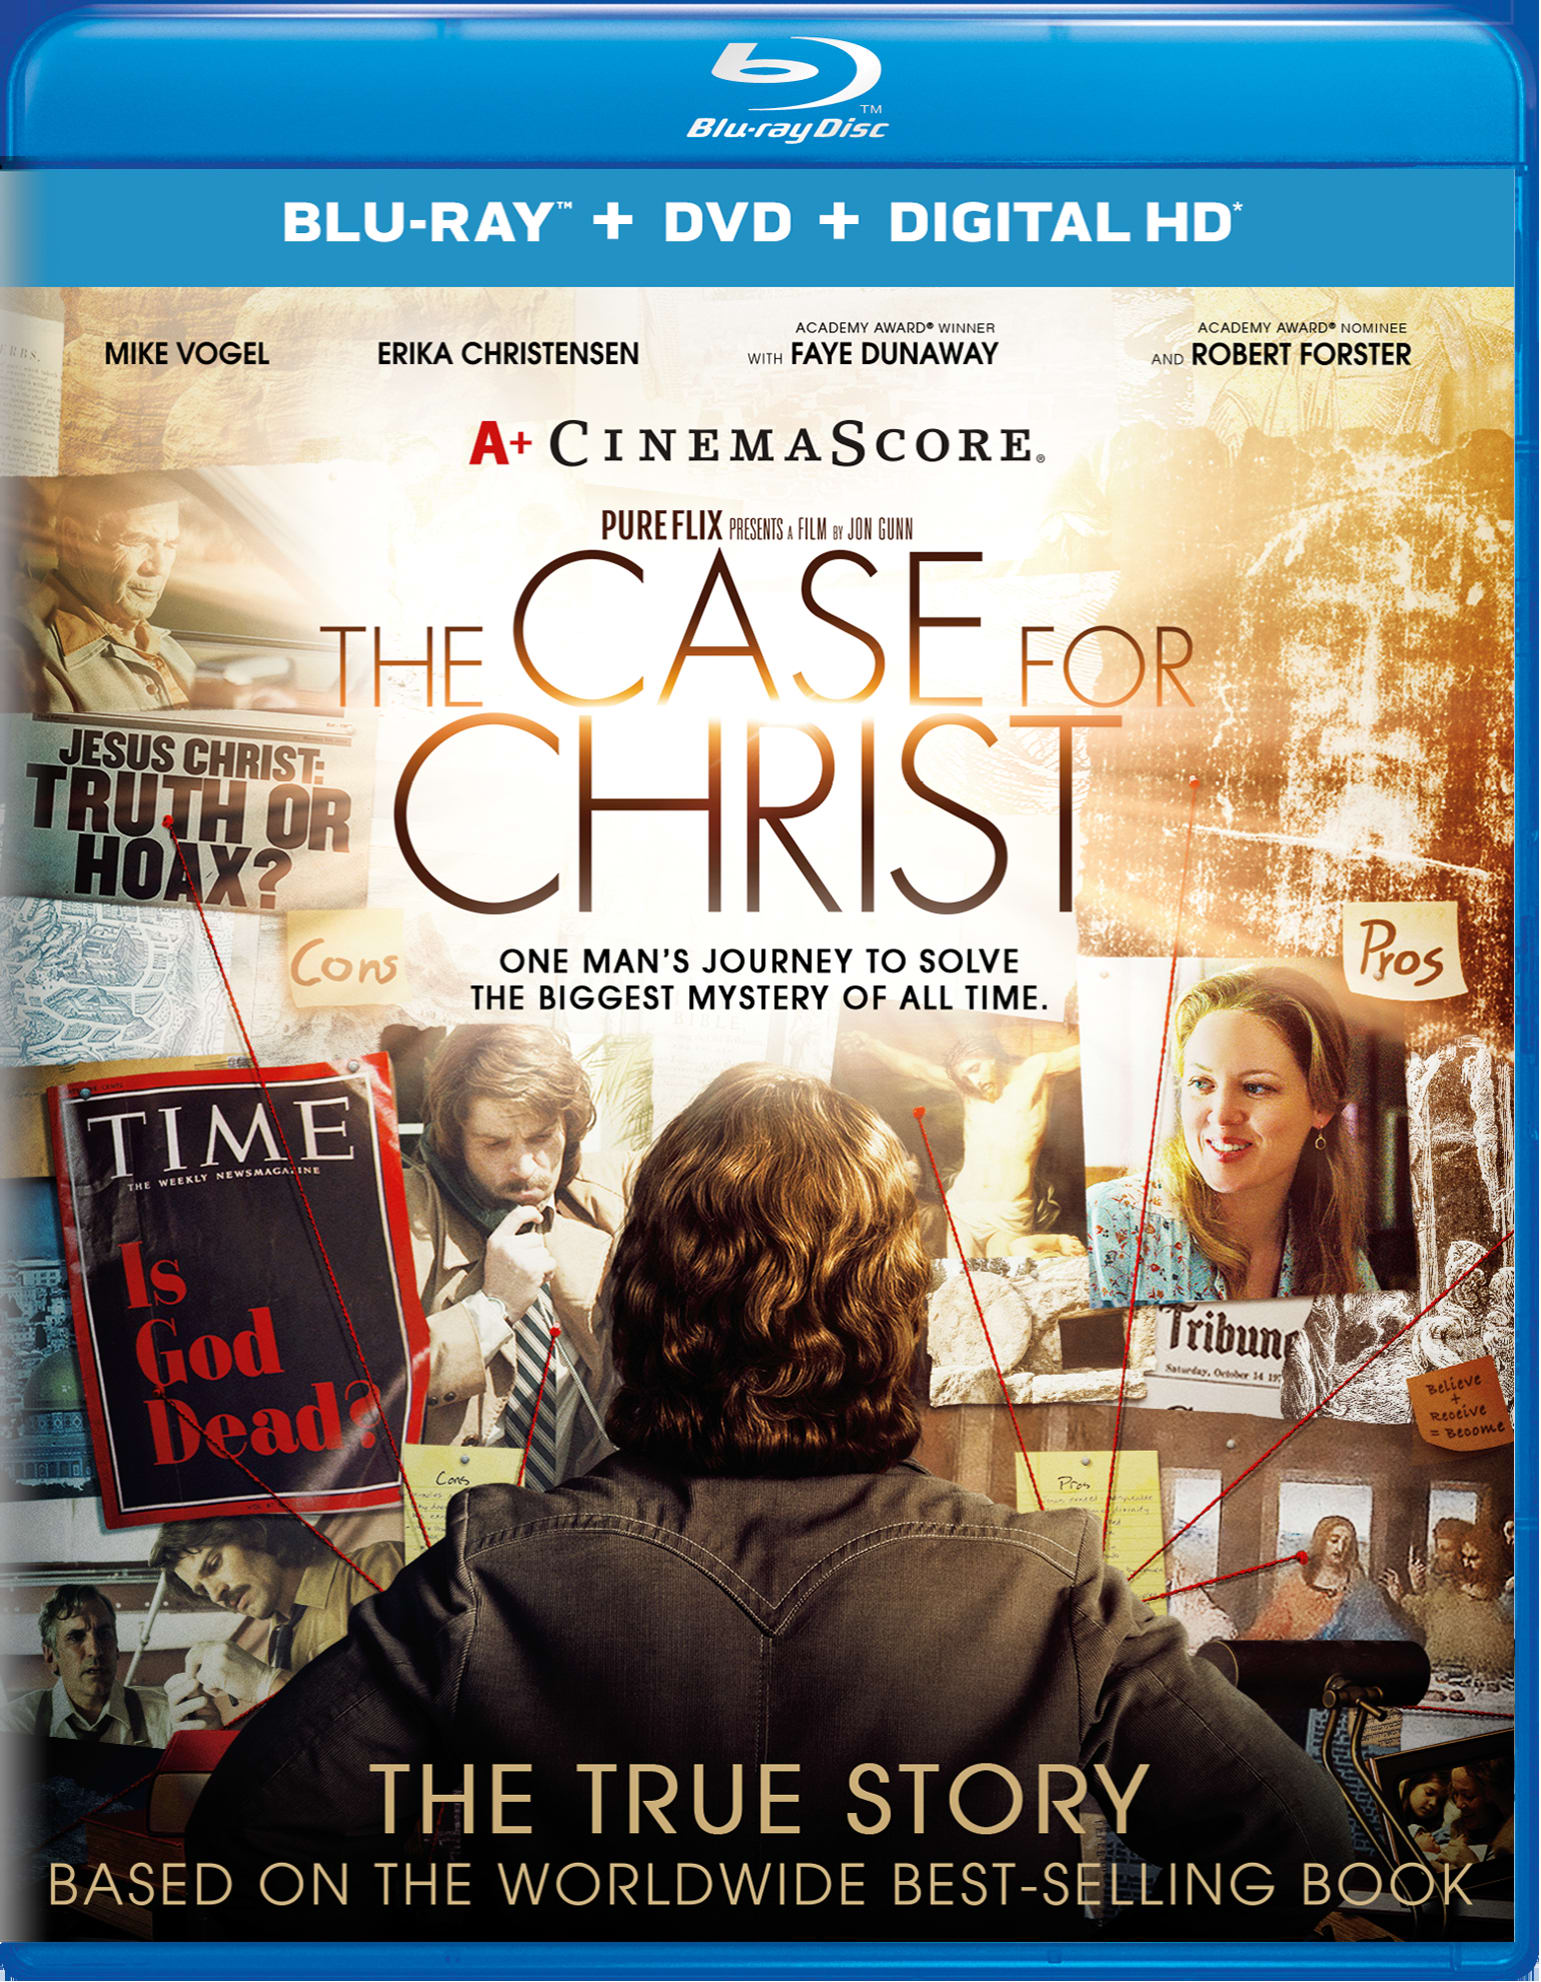 The Case for Christ (DVD + Digital) [Blu-ray]